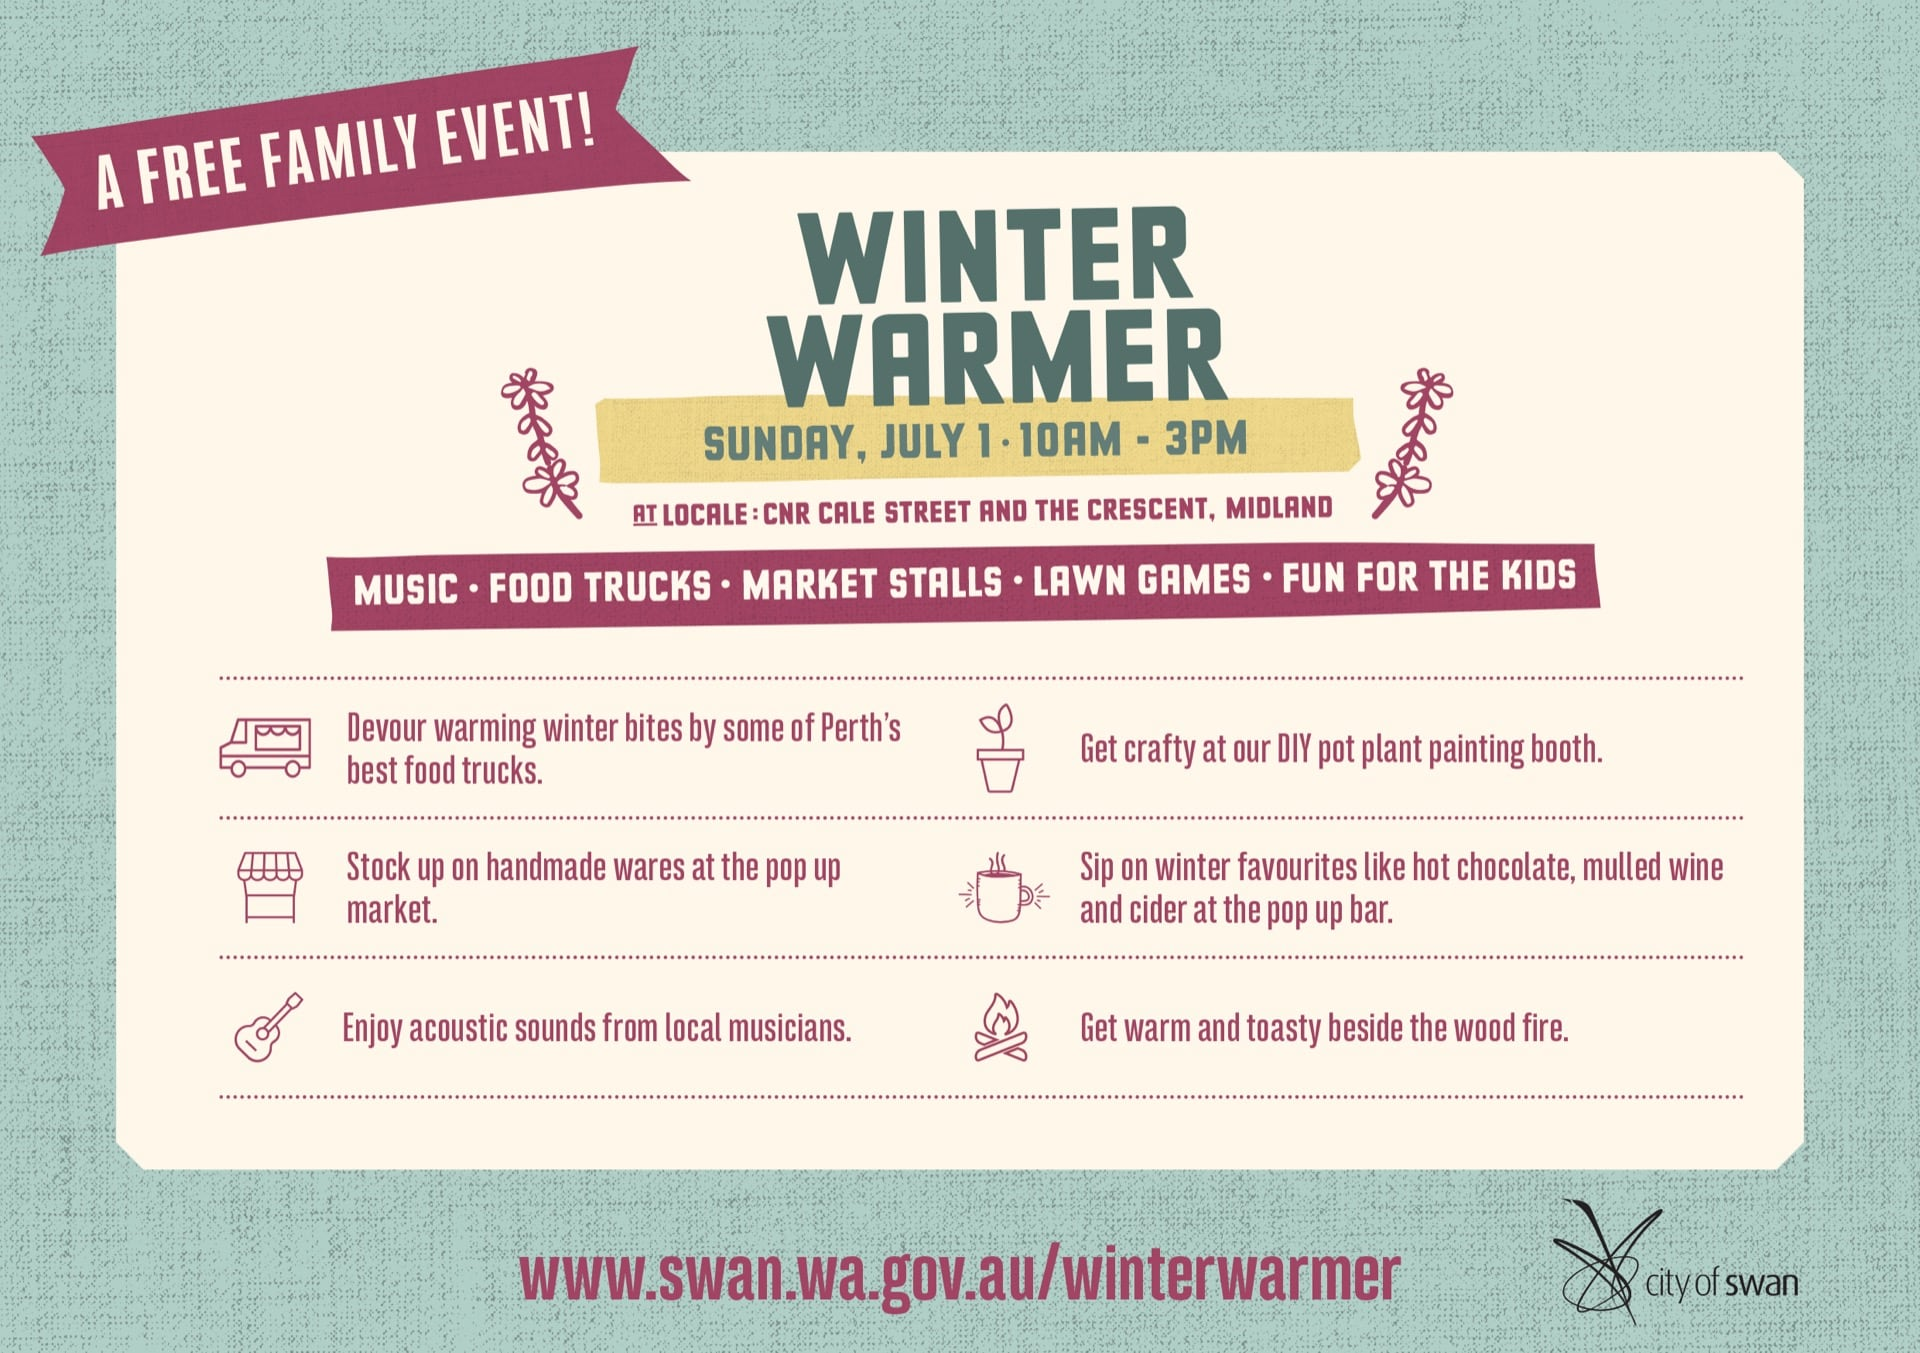 City of Swan Presents:Winter Warmer at Locale